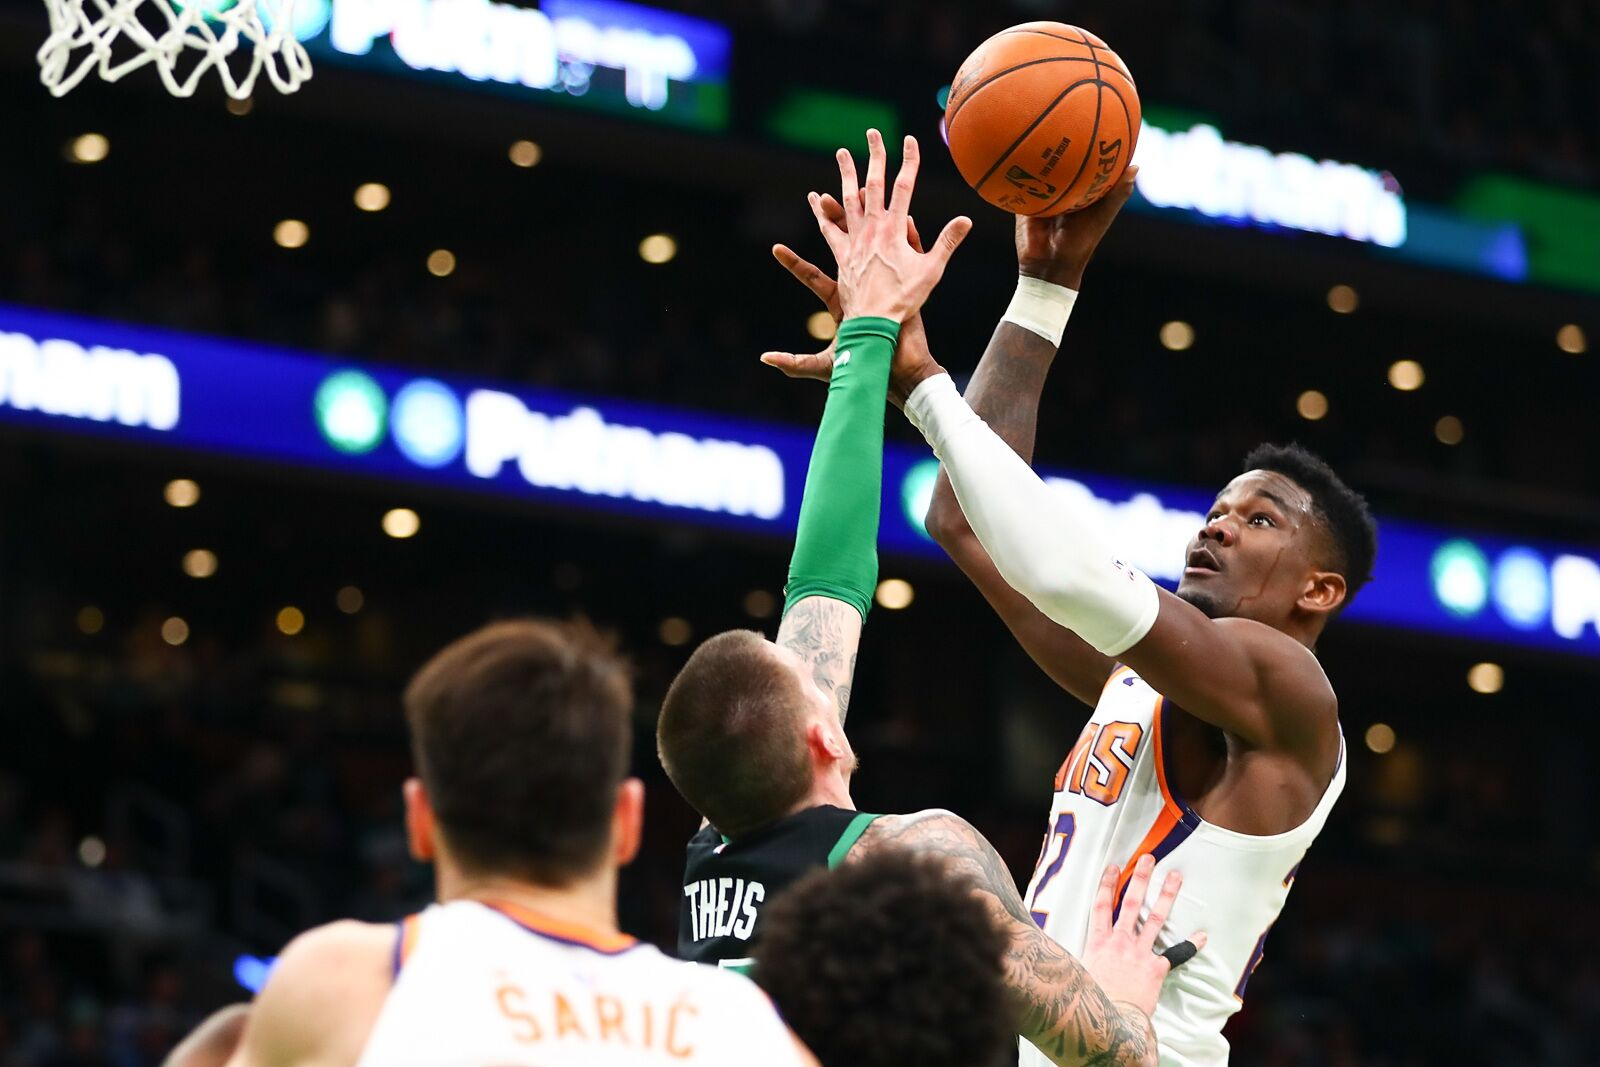 Forget Marcus Smart, Deandre Ayton's game was more important